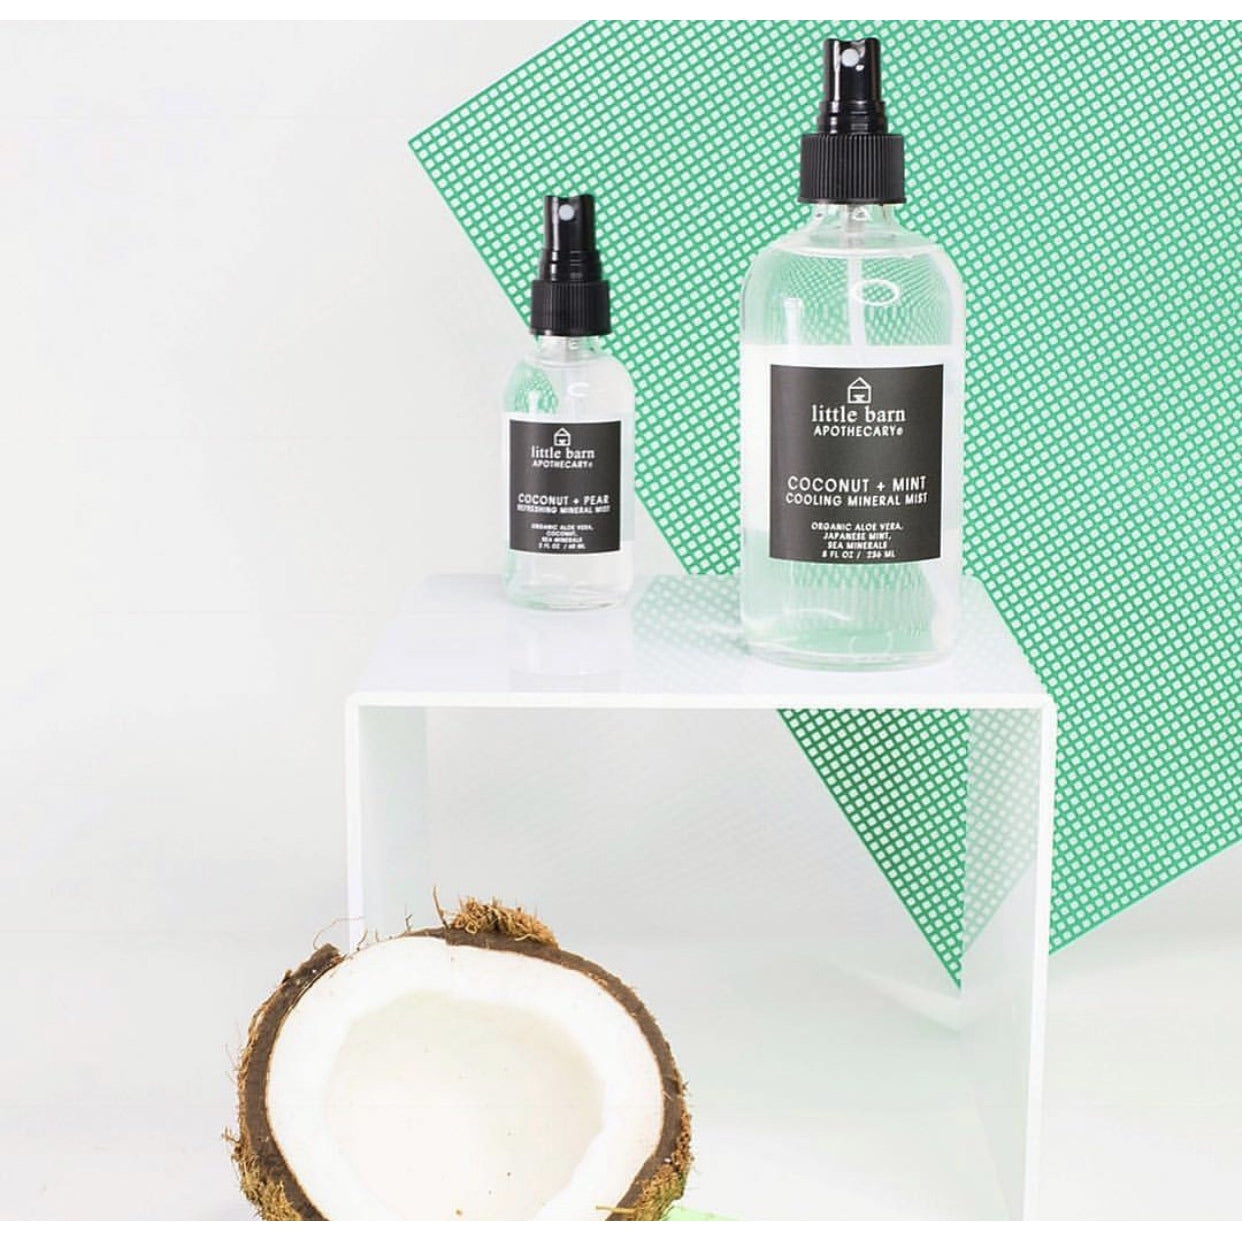 Little Barn Apothecary | Coconut + Mint Mist - FrankShopWP